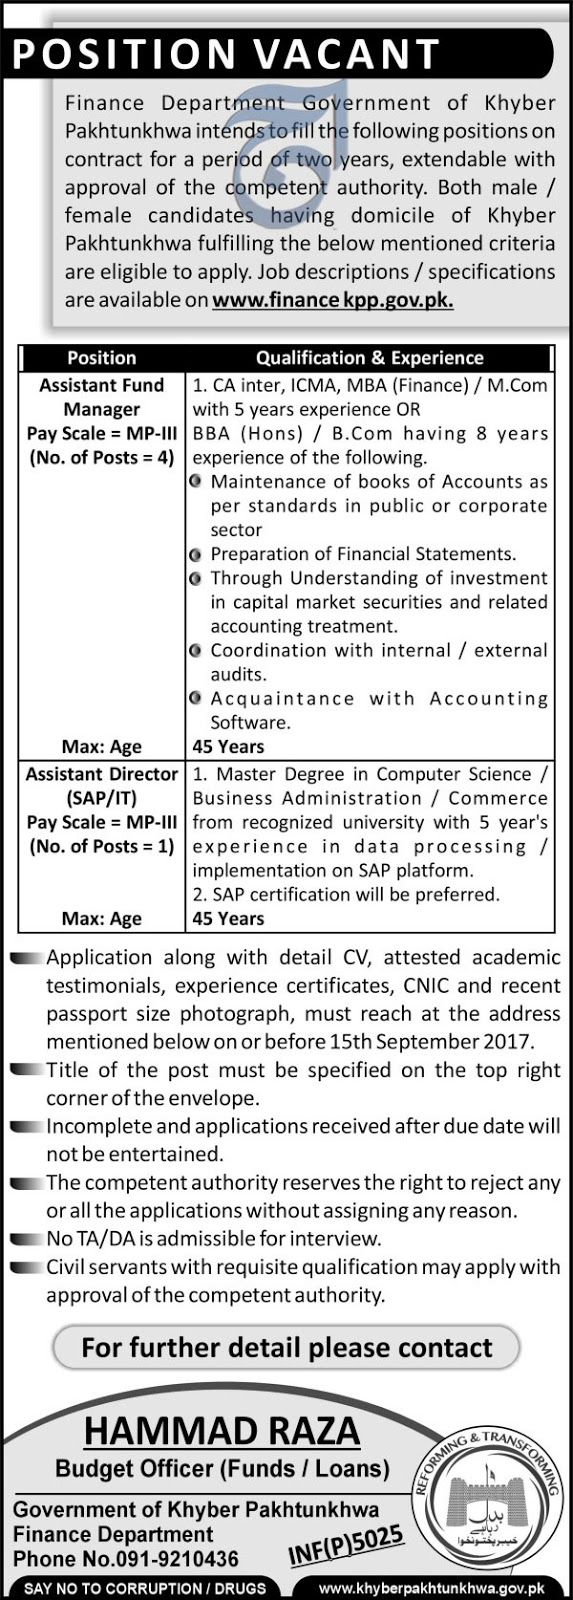 Jobs in KPK under Finance Department Download Application Form http://ift.tt/2ggrNhw   Jobs in Pakistan 2017 Following jobs are announced under:-  KPK under Finance Department   Last Date:  15 Sept   2017  Location:  KPK  Posted   on:  27 Aug   2017  Category:  Government   Organization:  KPK under Finance   Department  Website/Email:  financekpp.gov.pk  No.   of Vacancies  N/A  Education   required:  Masters MBA/CA Inter/ B.COM/BBA/   How   to Apply:  Mentioned   below  Vacant Positions…